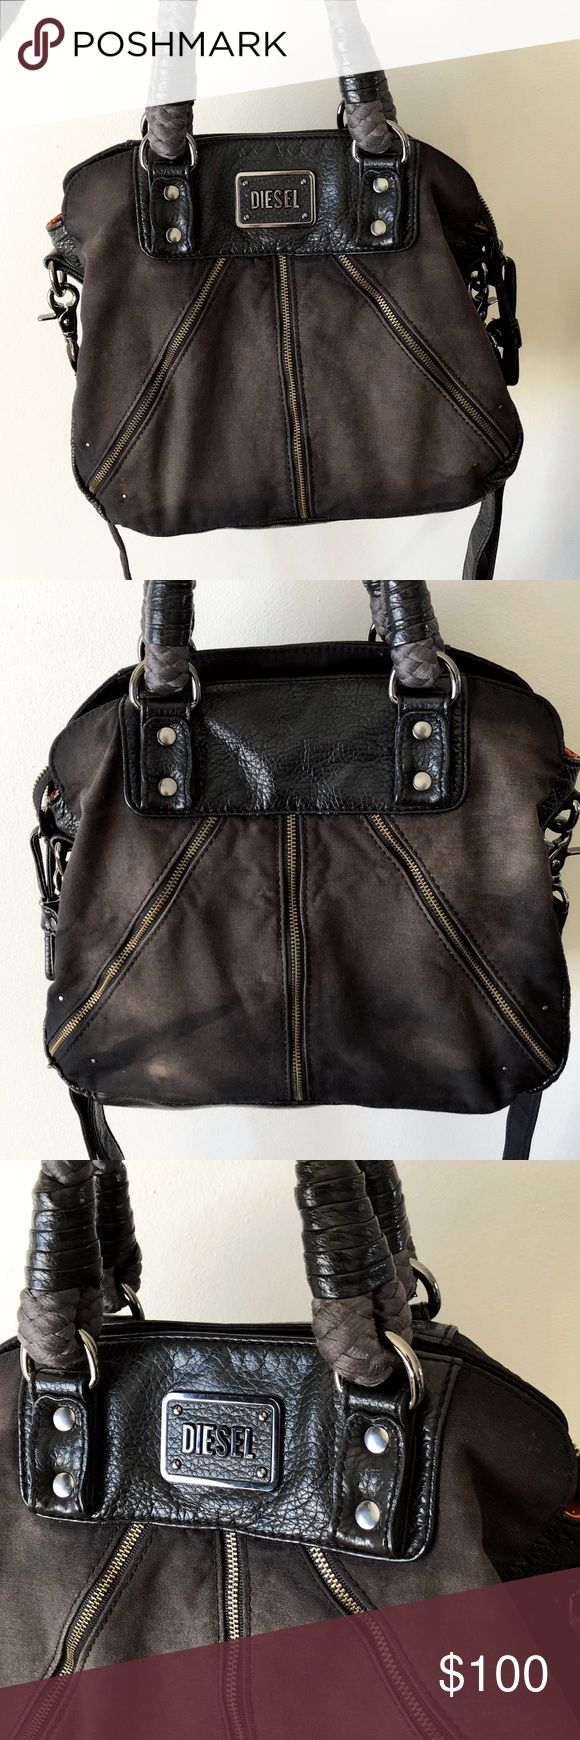 DIESEL handbag Distressed leather and canvas handbag from Diesel with crossbody strap. Like new condition. Orange interior lining.   10 1/2 x 12 inches Diesel Bags Crossbody Bags